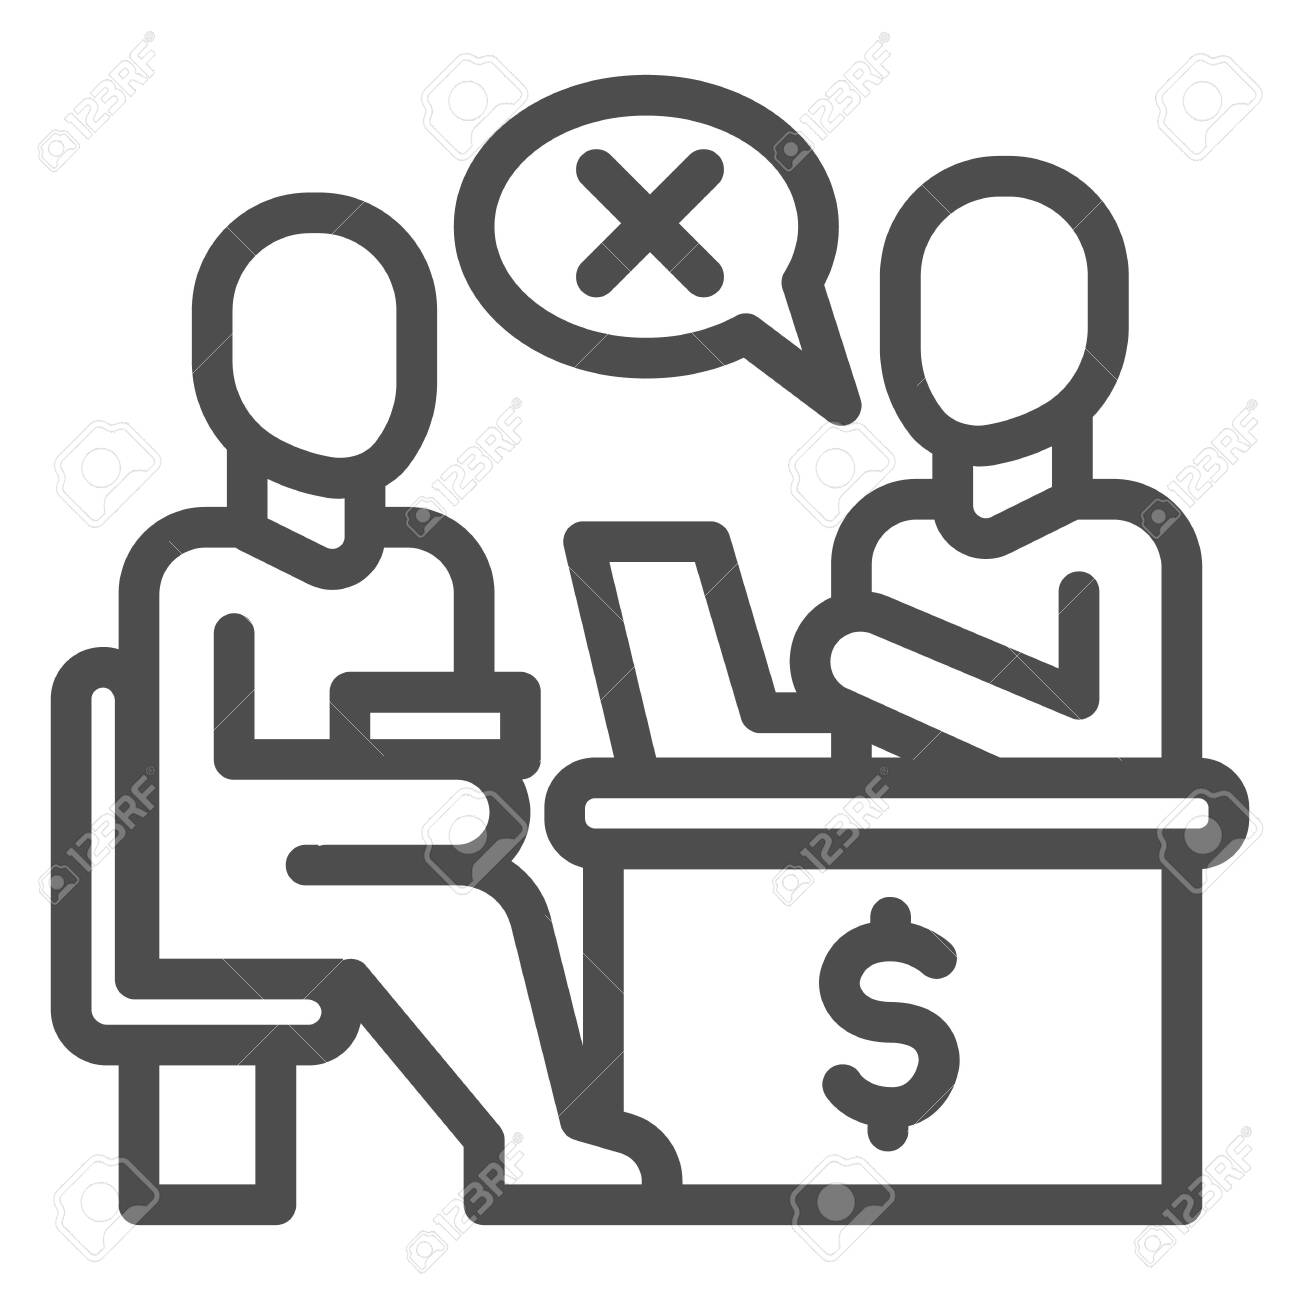 Bank manager refuses a loan for person line icon, Payment problem concept, Loan refusal sign on white background, refuse in credit icon in outline style for mobile and web. Vector graphics. - 151890142